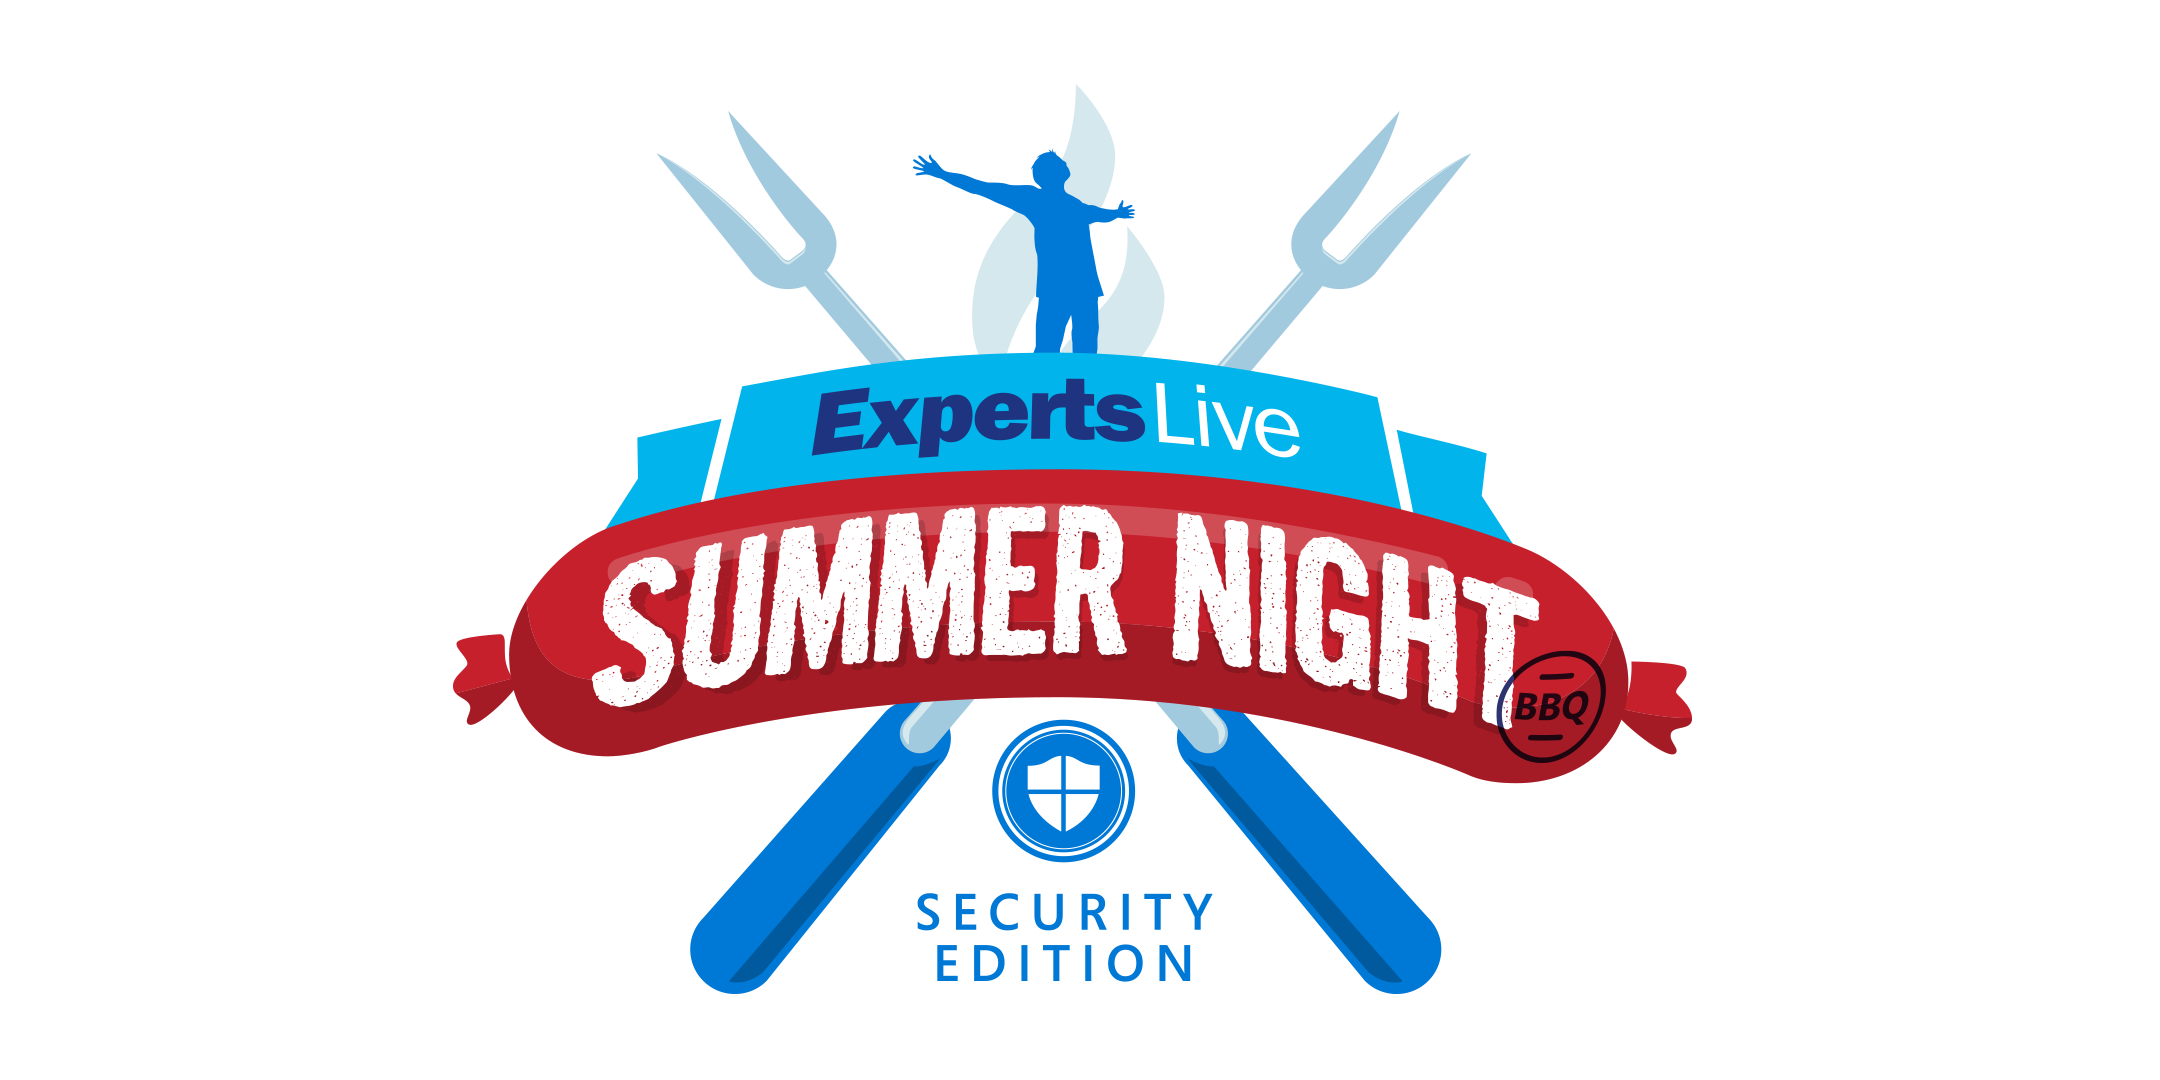 Experts Live Summer Night 2017